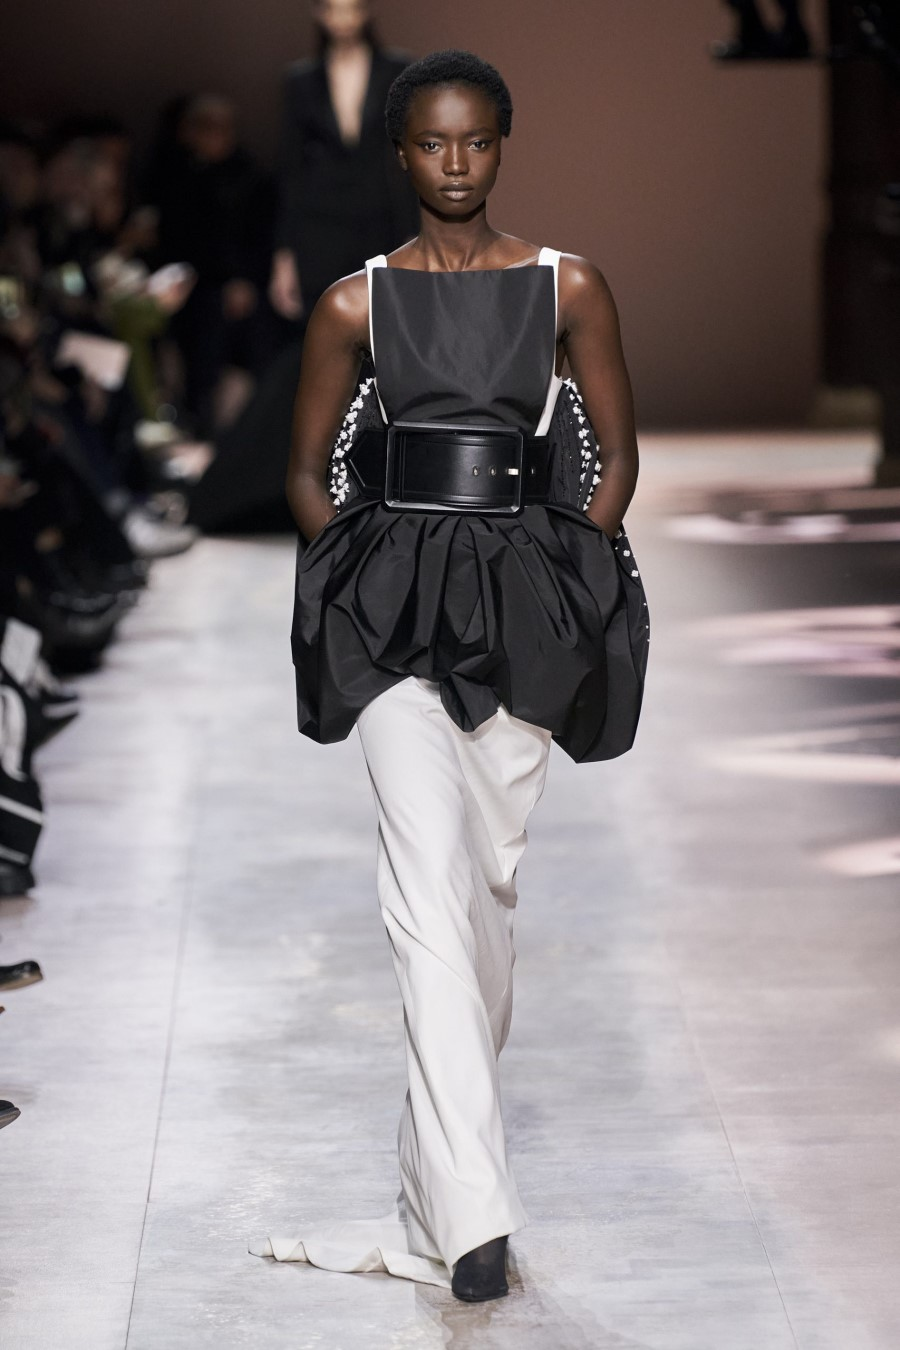 Givenchy Haute Couture Spring Summer 2020Givenchy Haute Couture Spring Summer 2020